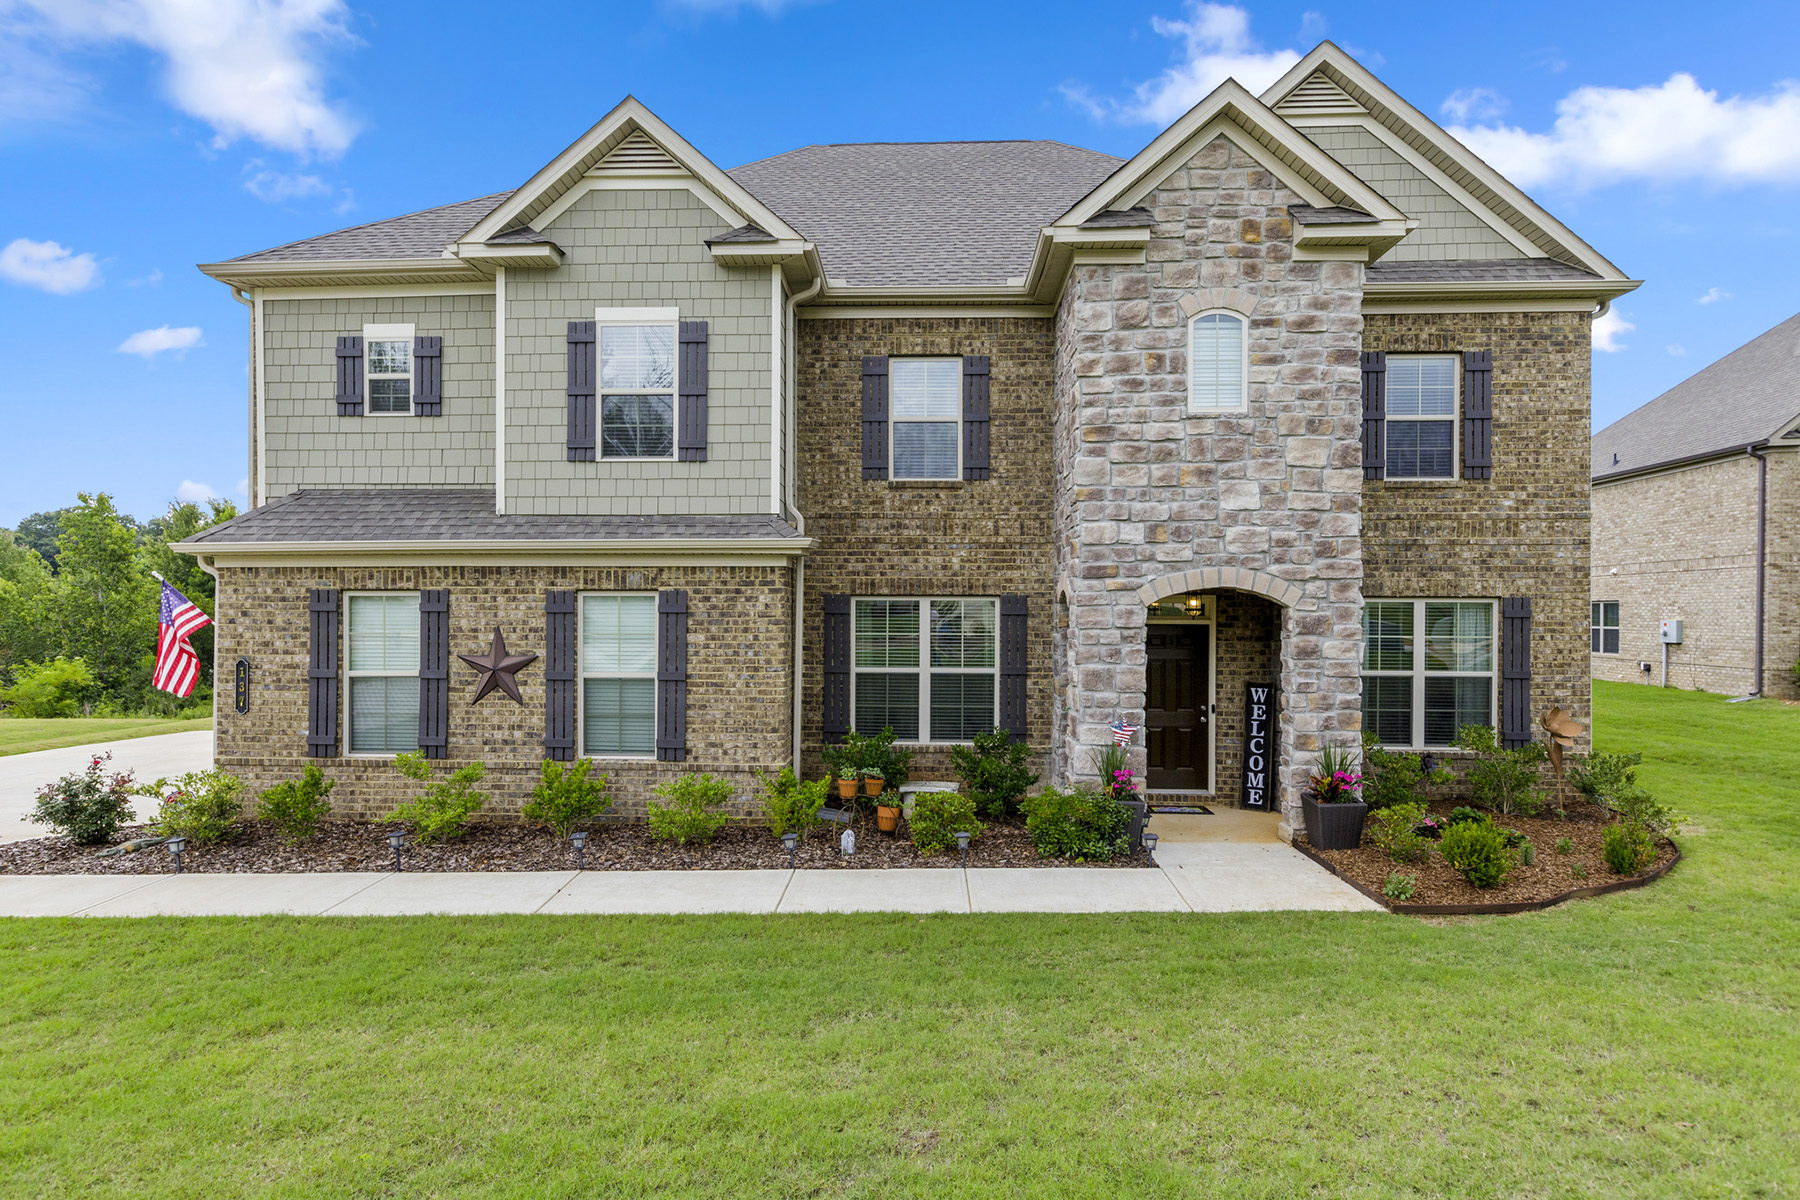 Single Family Homes for Sale at Newer Construction with Beautiful Lake Views 137 Aylesbury Boulevard McDonough, Georgia 30252 United States